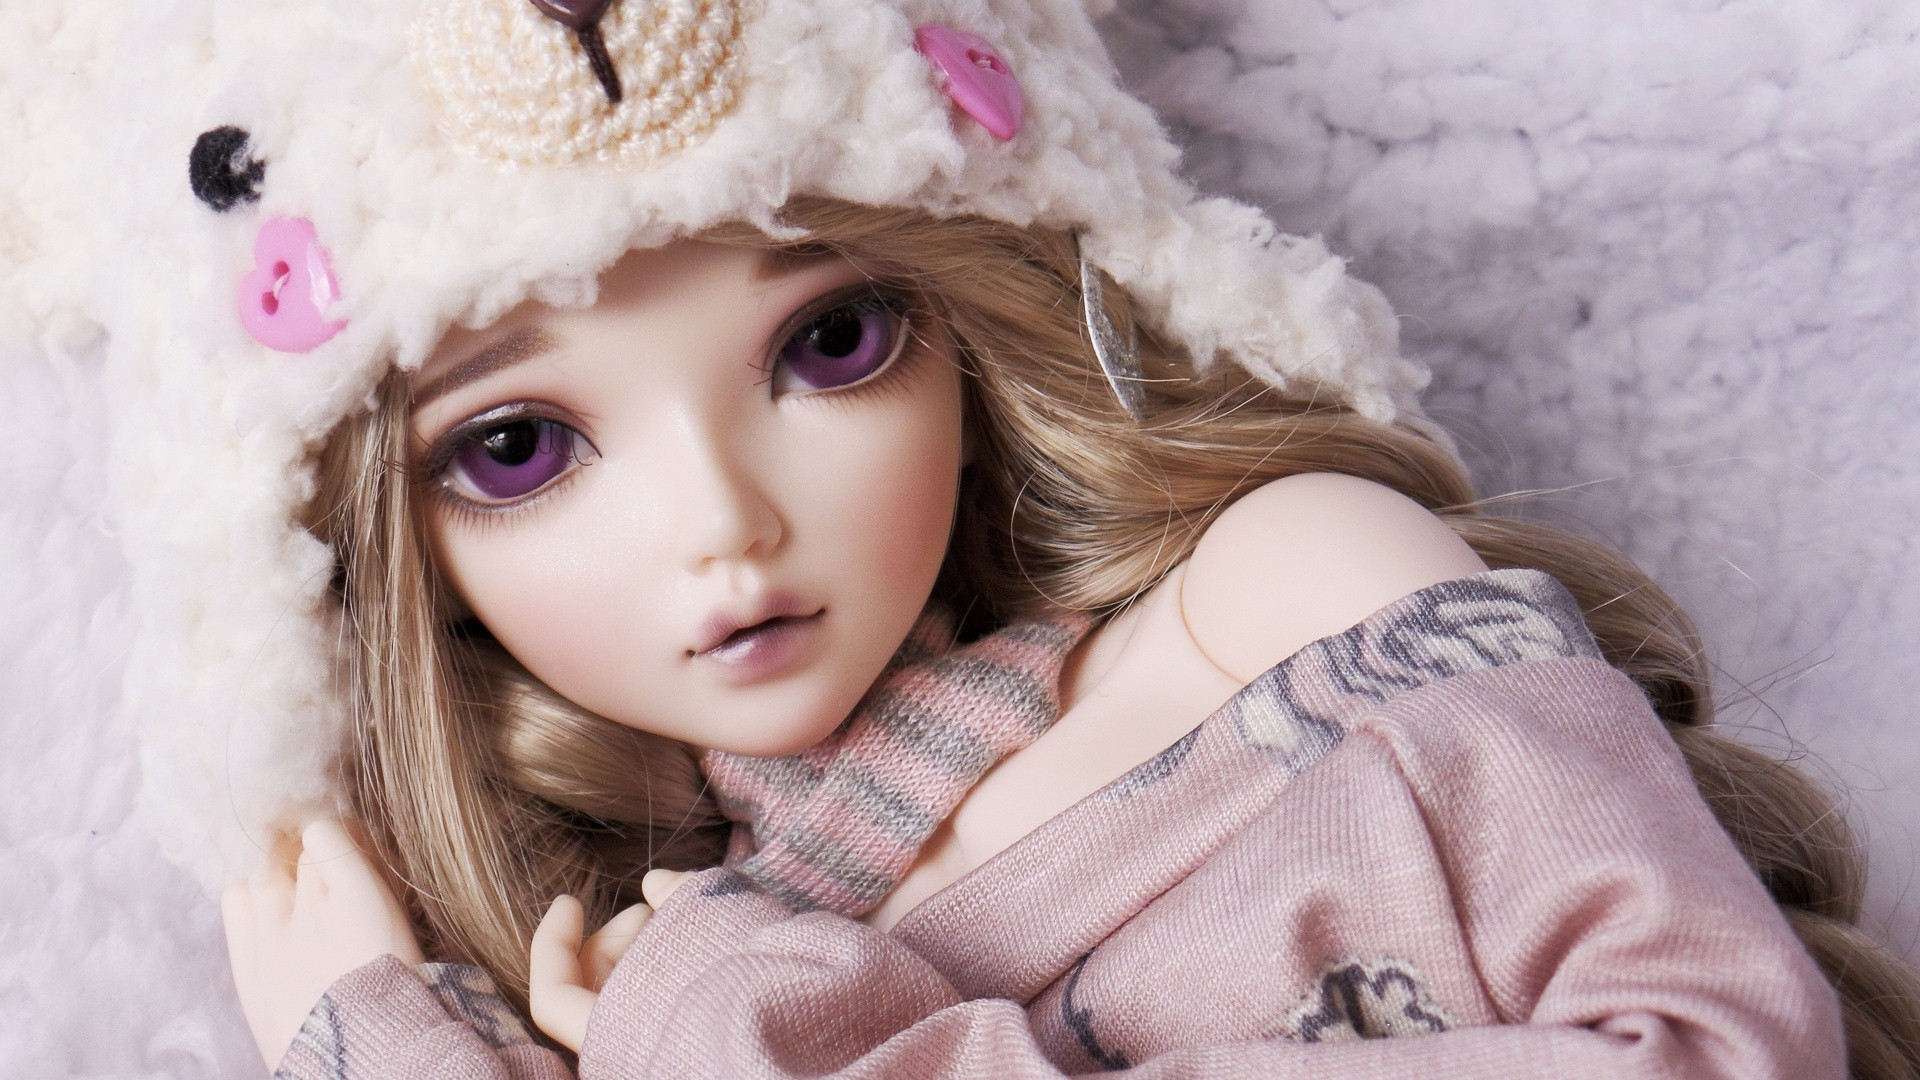 Cute doll wallpaper wallpapersafari - Barbie pictures download free ...